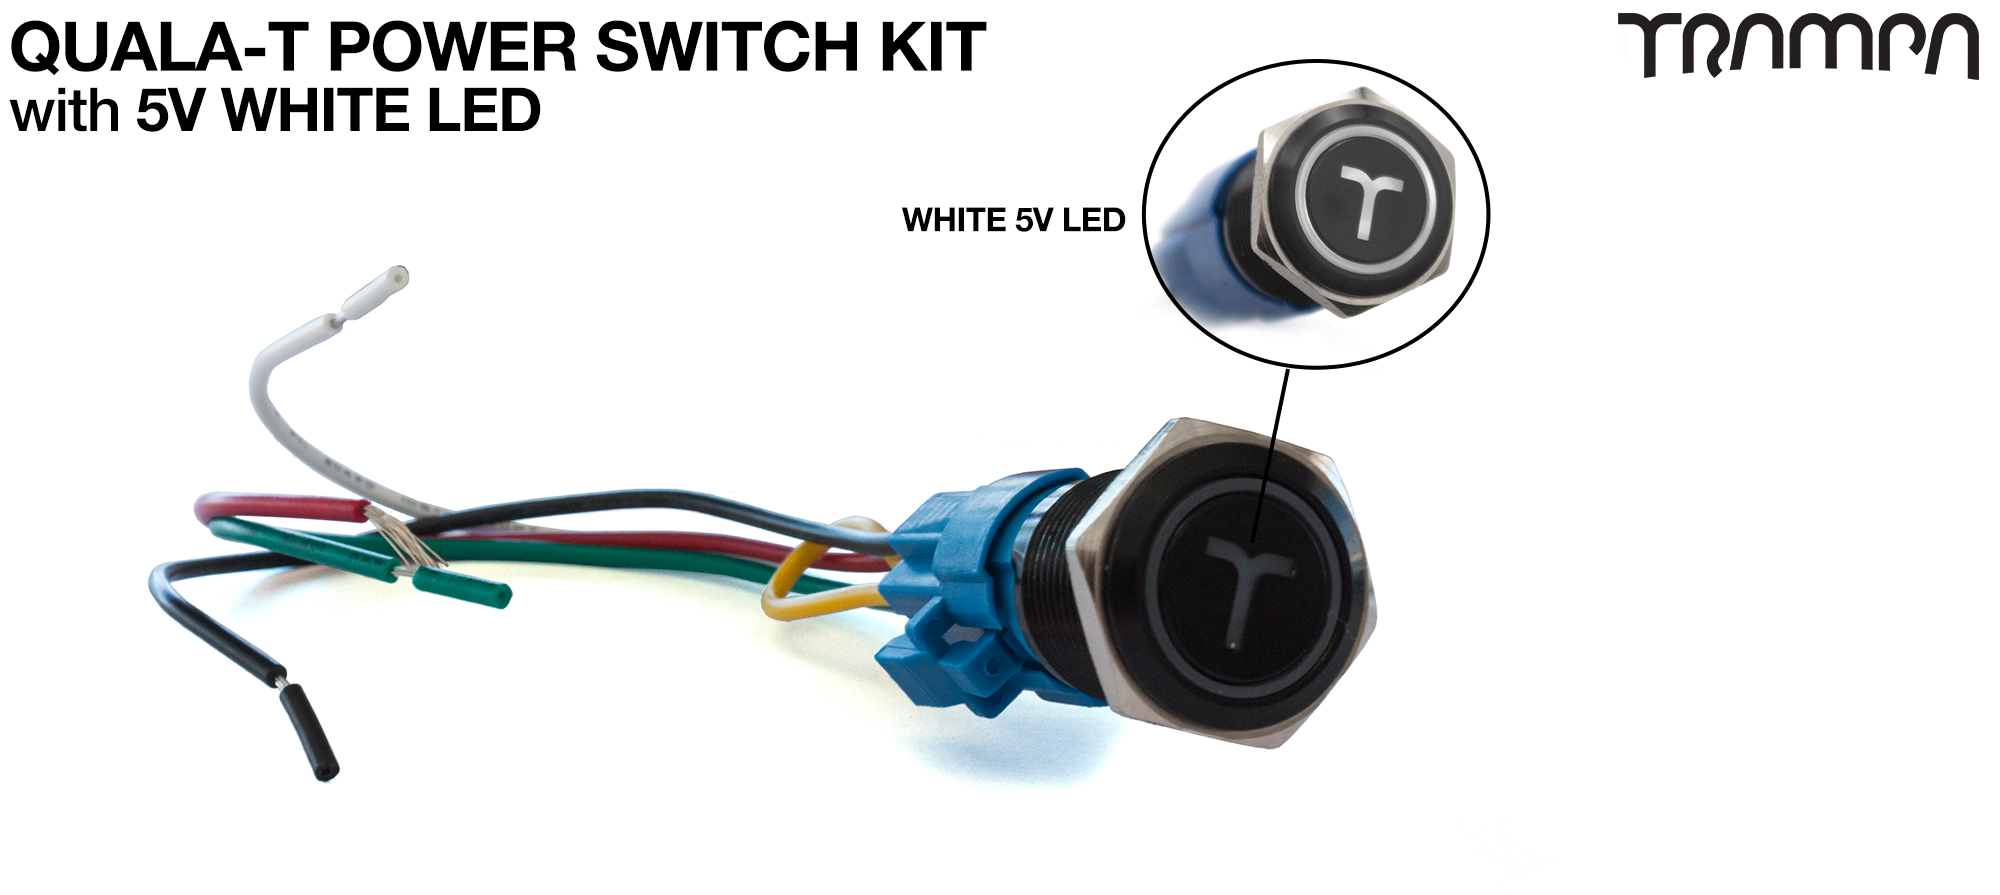 WHITE LED QUALA-T Power Switch Kit with 16mm Fixing Nut & Cable Harness